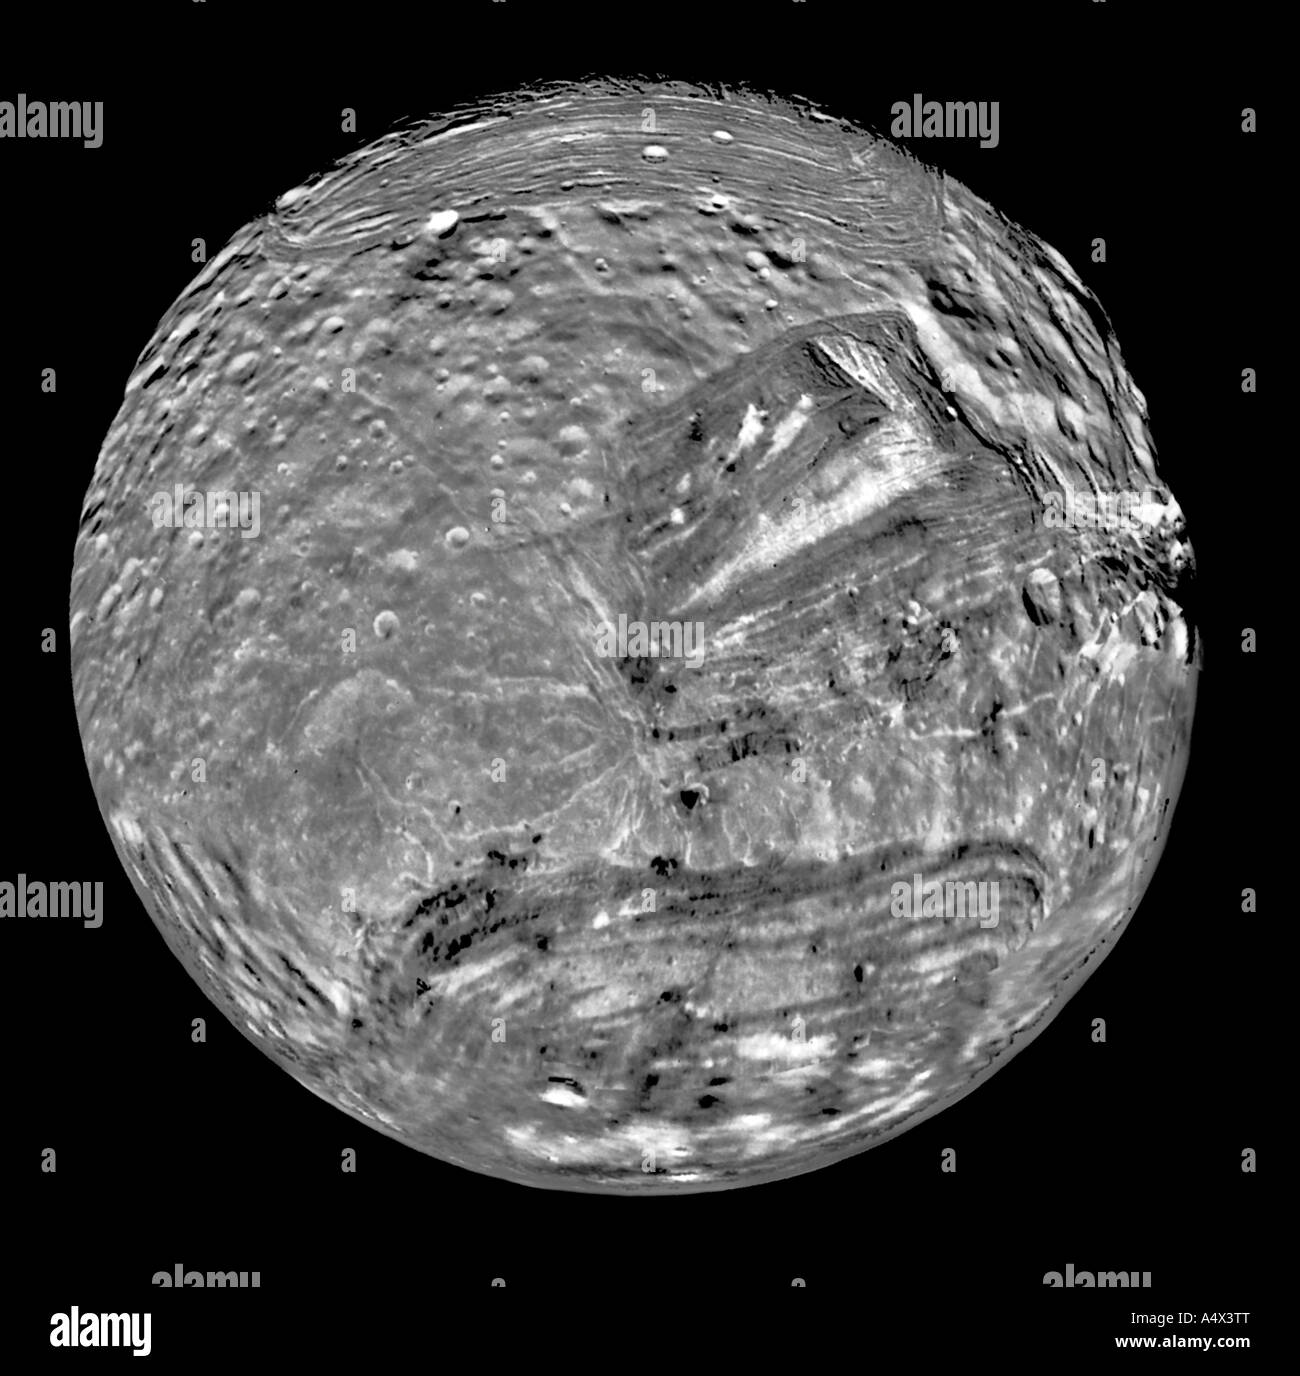 hd uranus moon miranda - photo #14